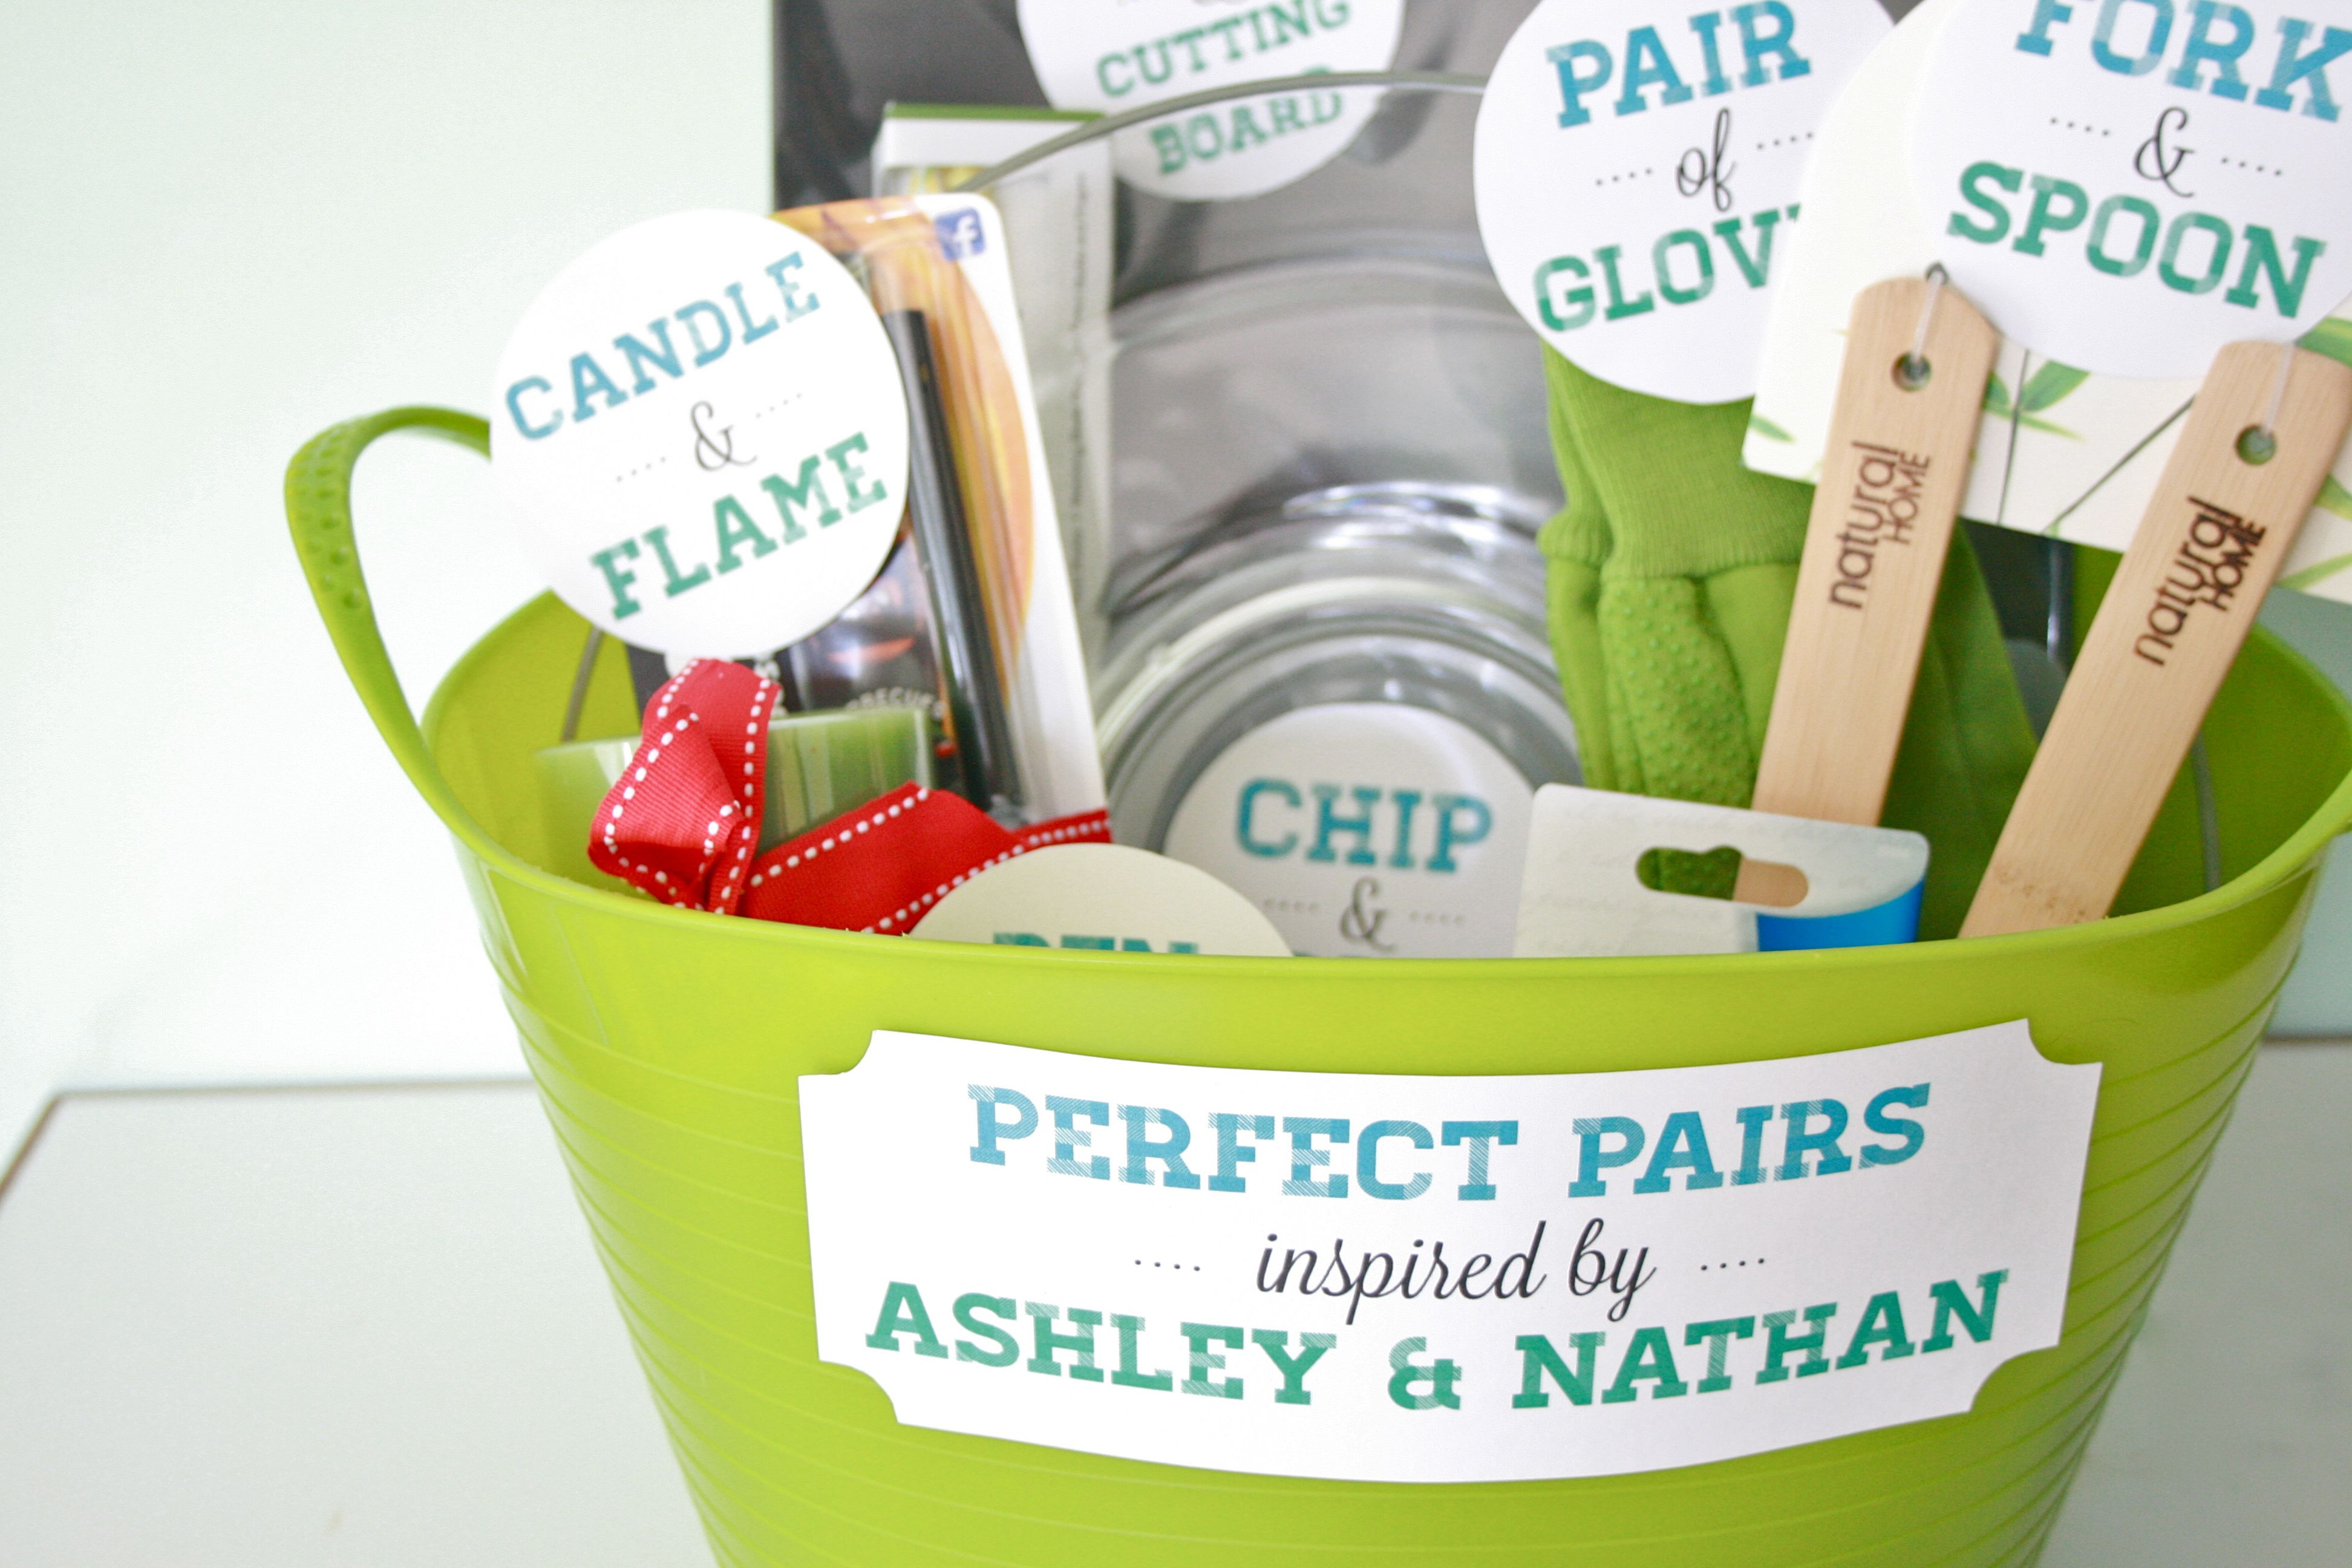 Wedding Gift Basket Ideas For Bride And Groom : Pics Photos - Fun Creative Bridal Shower Gifts